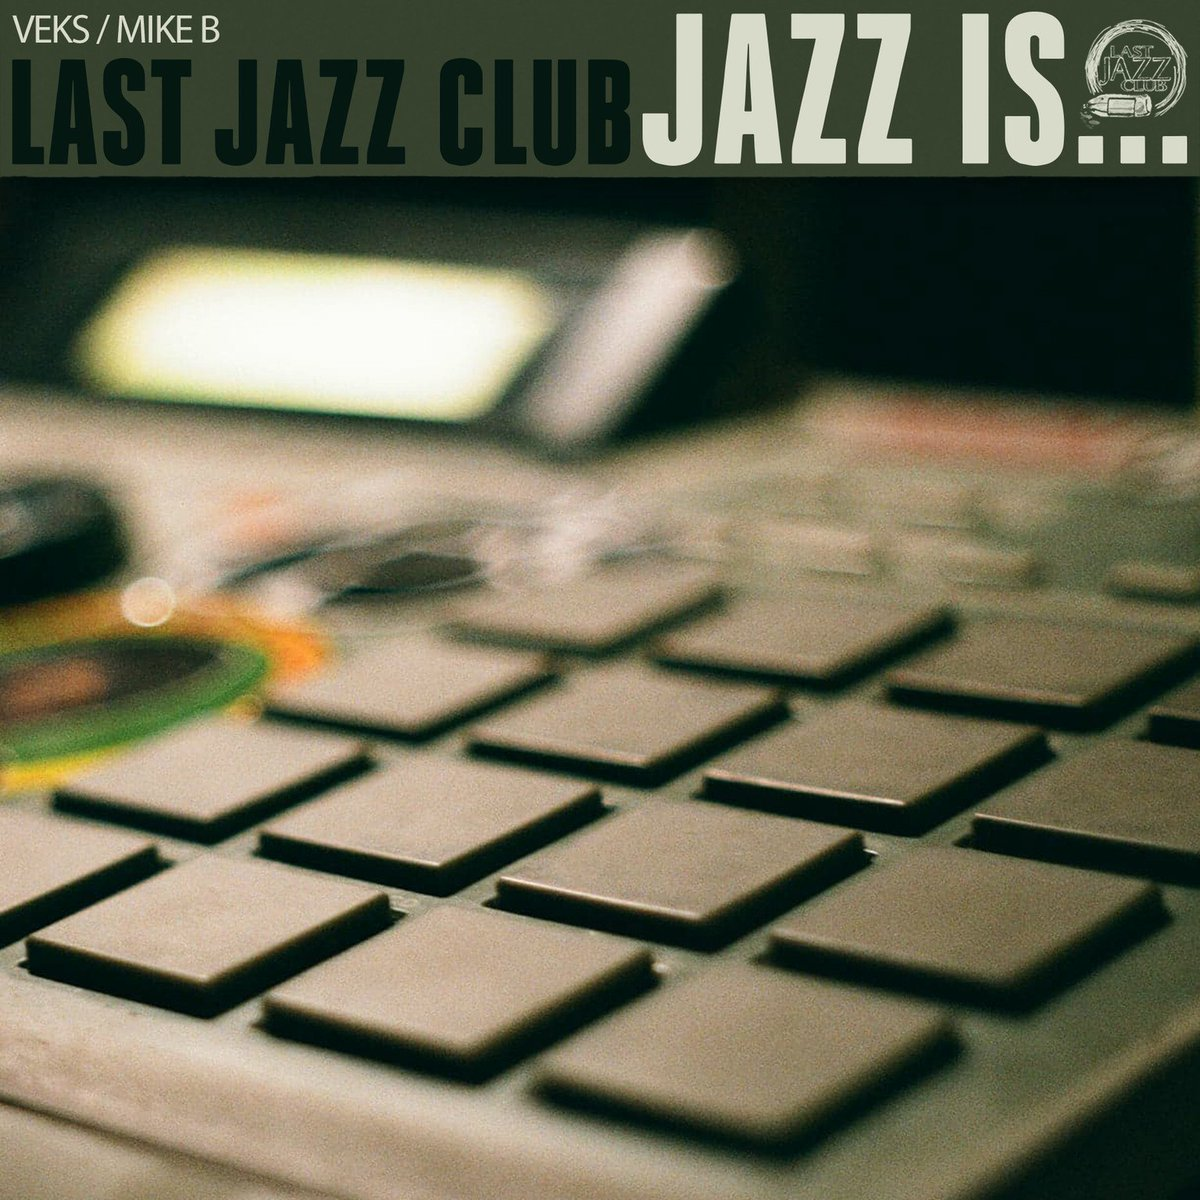 No Words #40: Last Jazz Club, Butcher Brown, Cosmic Analog Ensemble, deeB, DSC & A. Sims